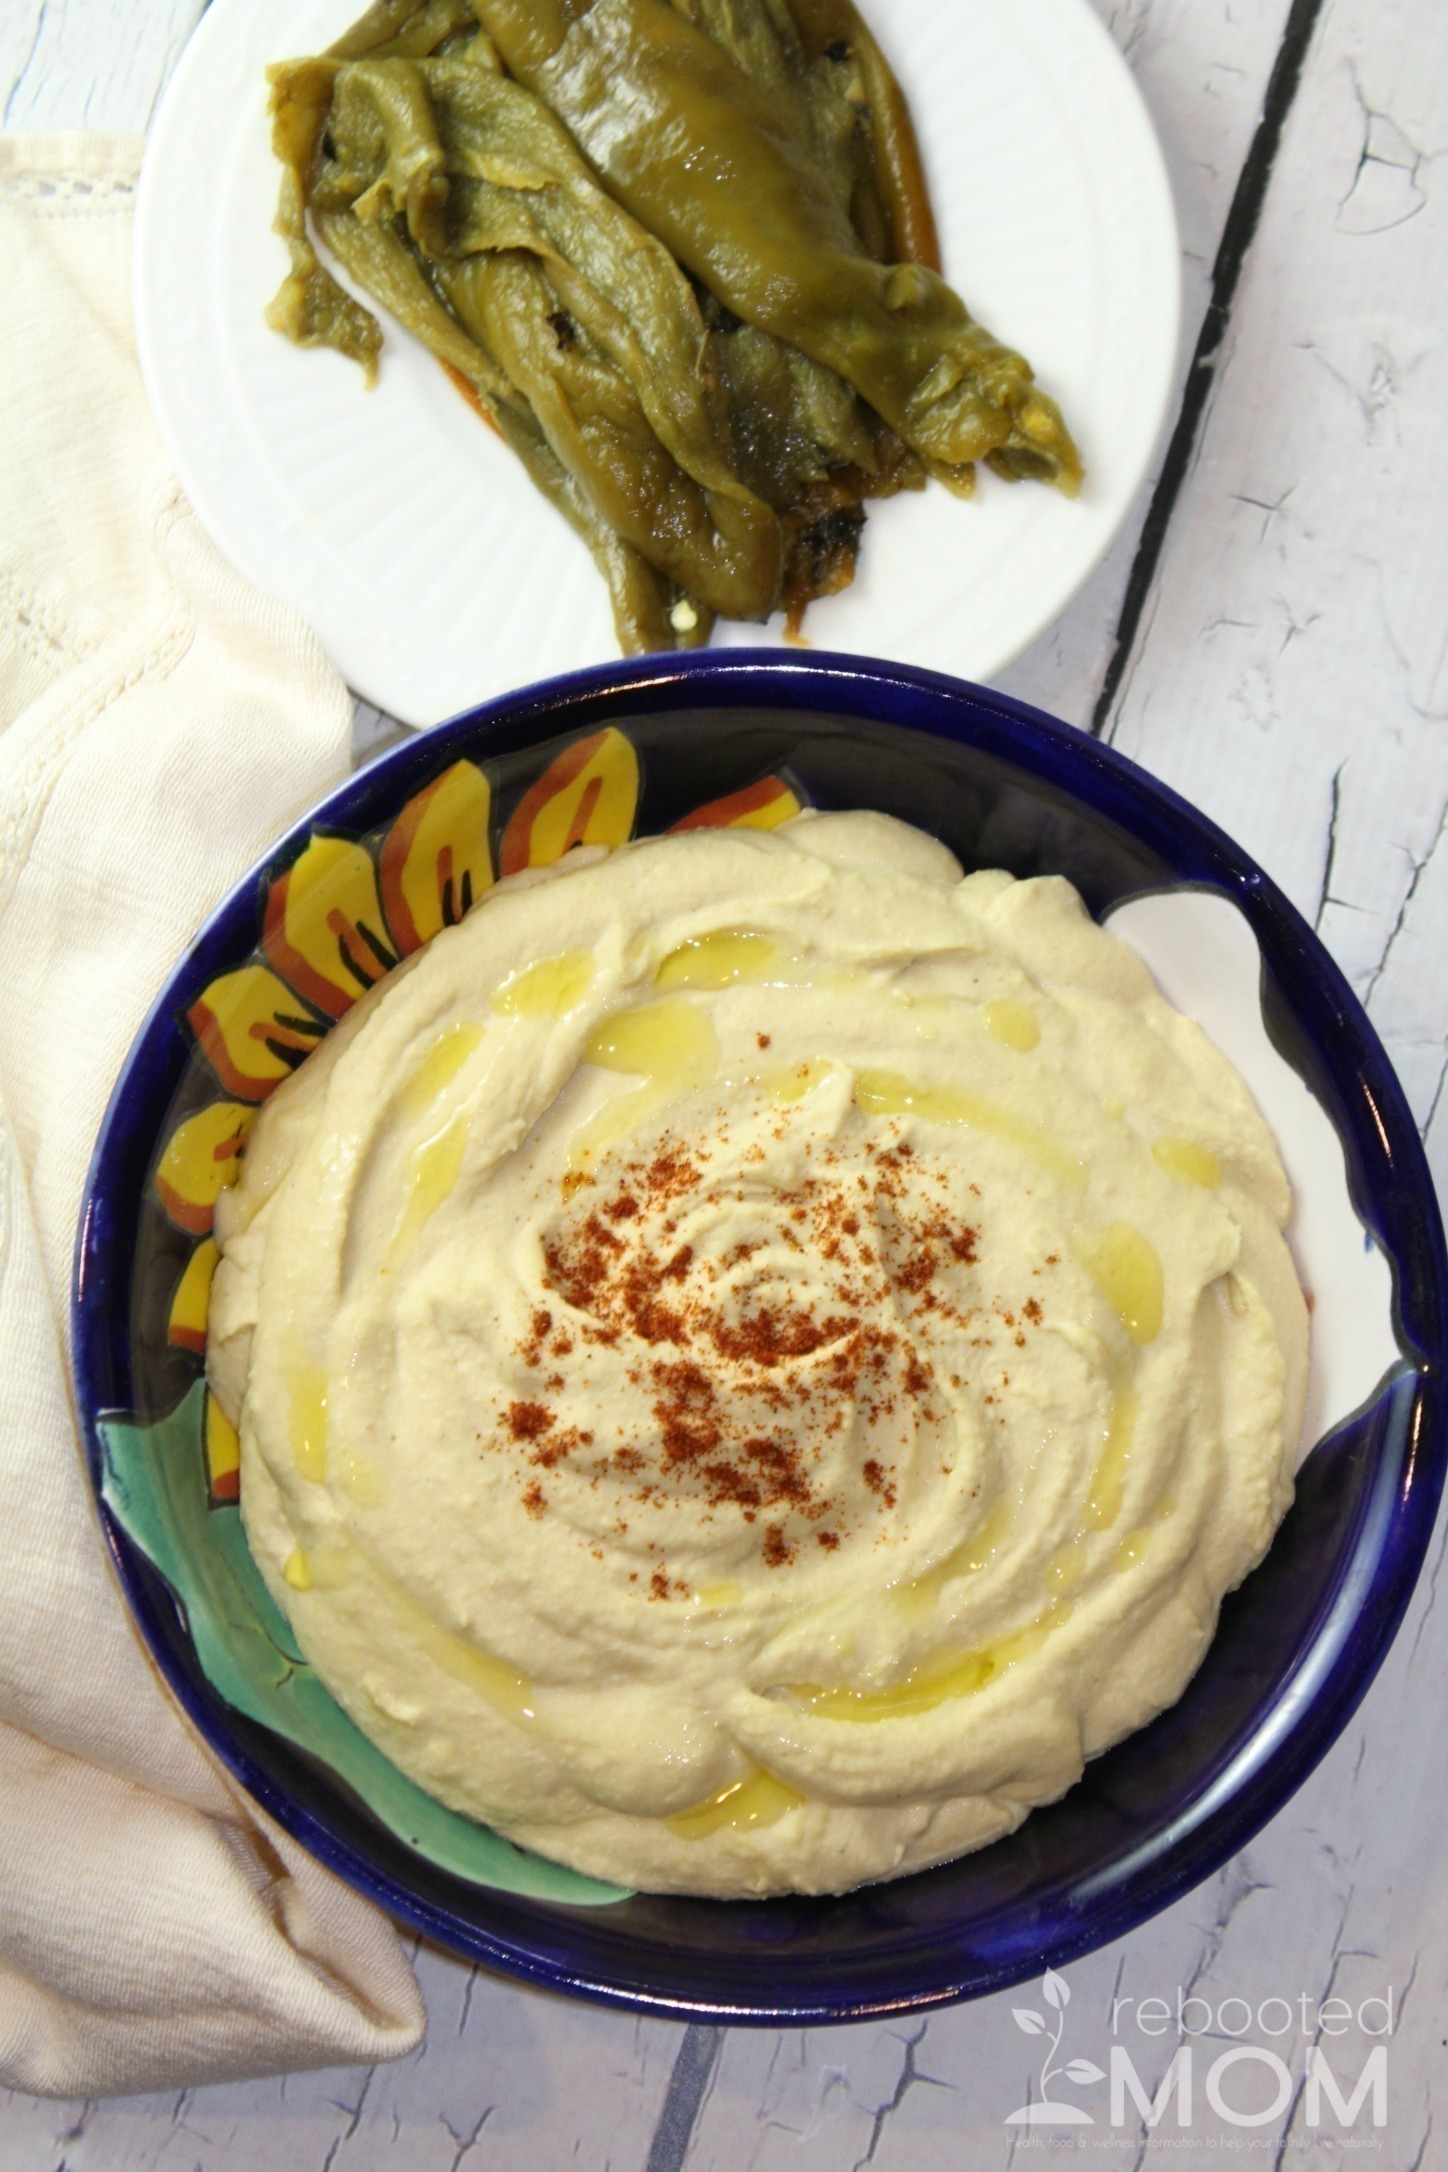 This hatch chile hummus takes traditional hummus up a notch with the flavor of these roasted hatch chiles.